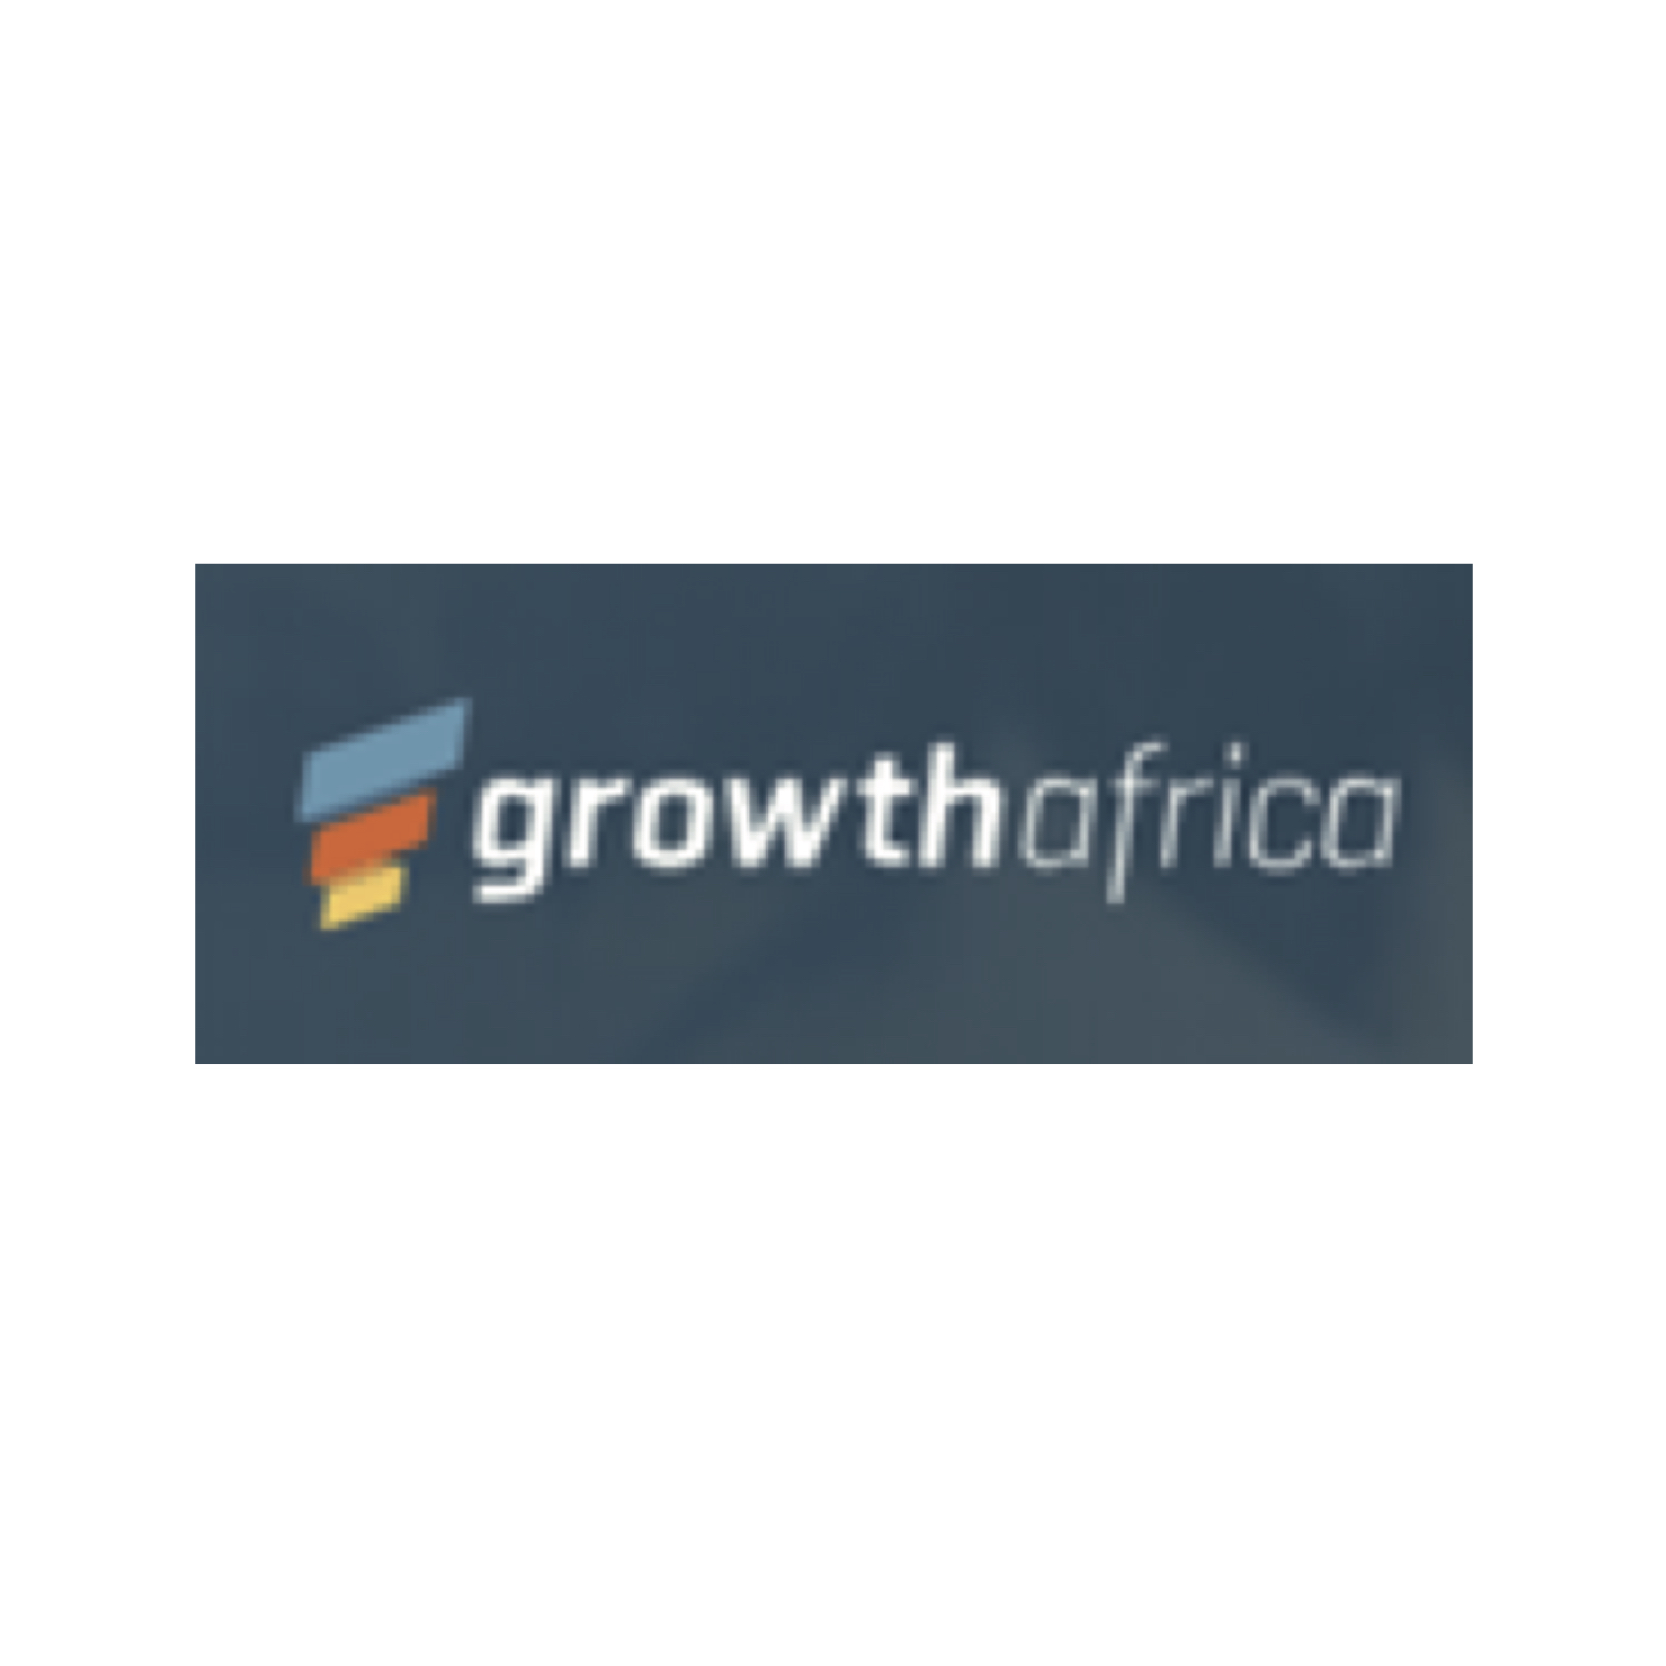 growth africa